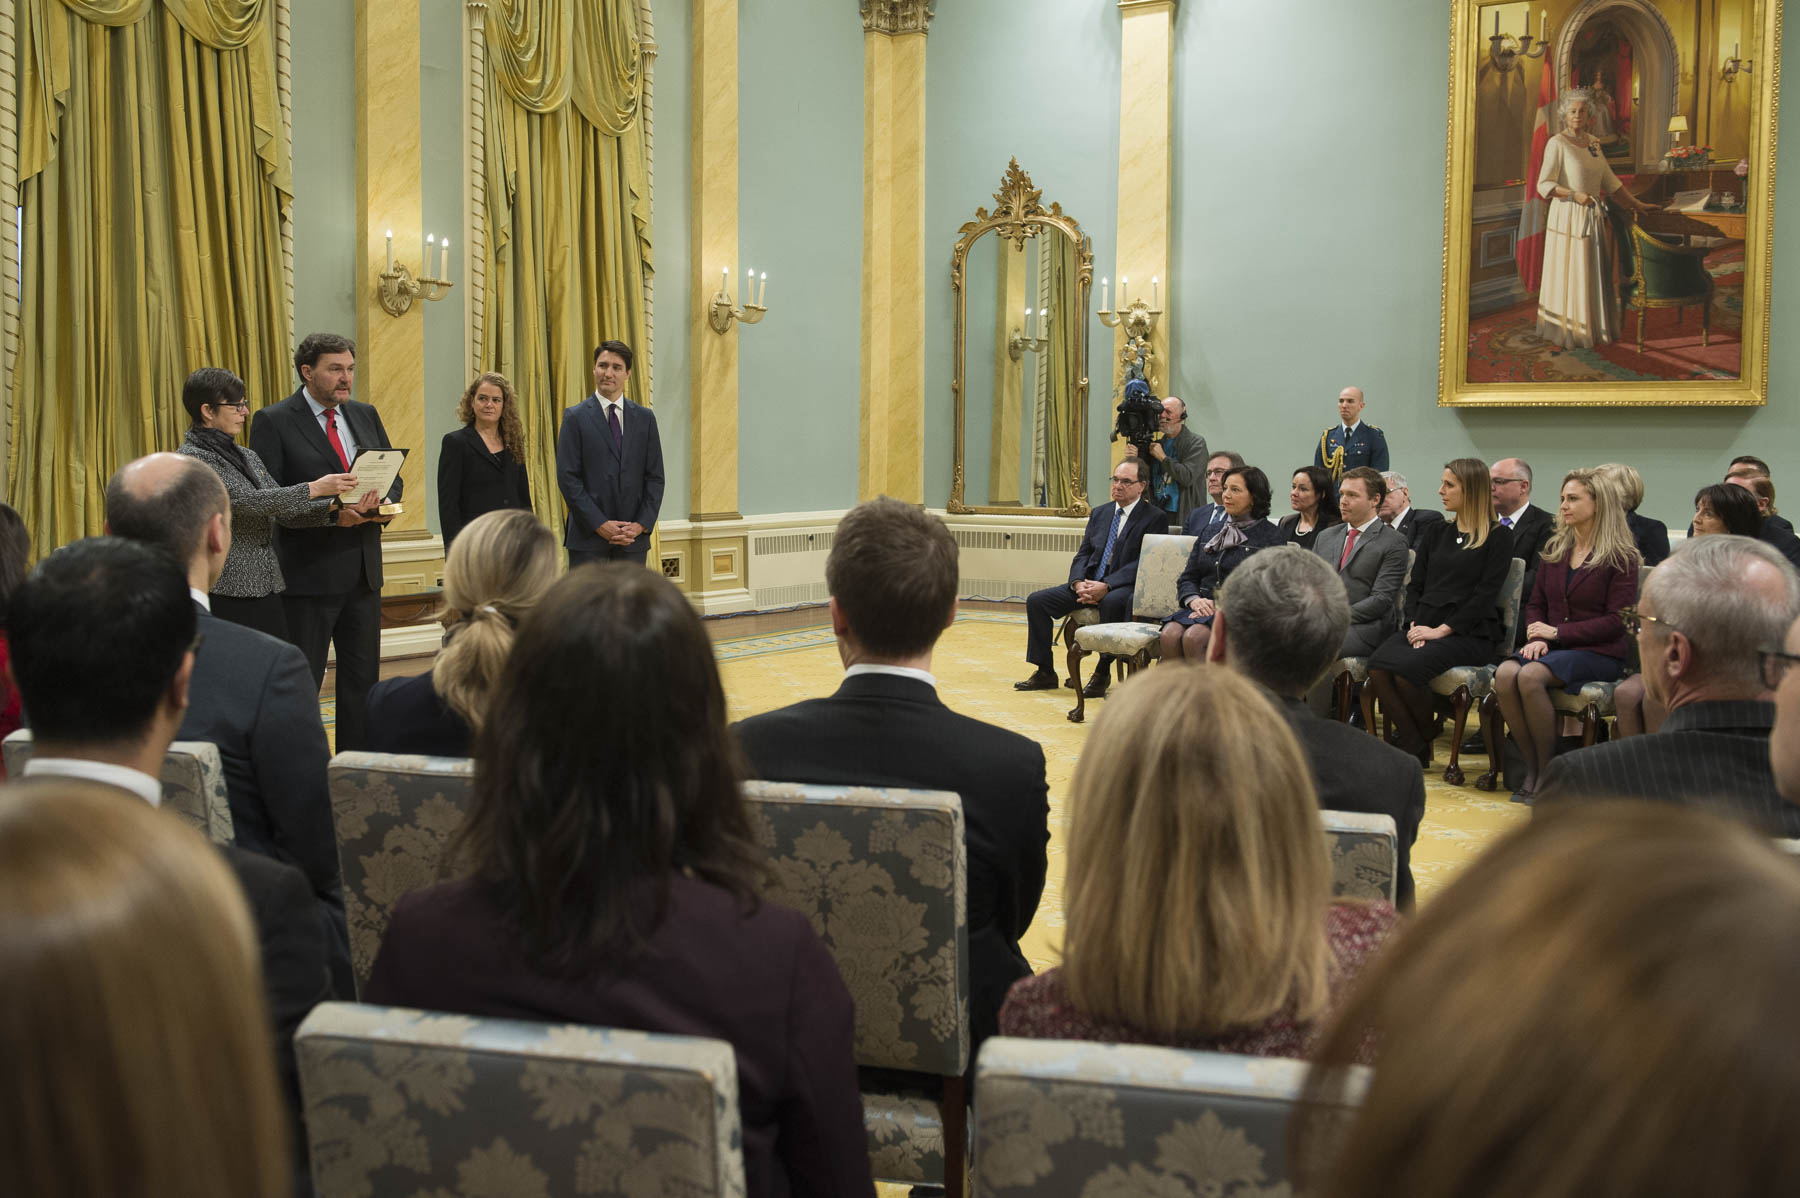 Her Excellency presided over the swearing-in of the new Chief Justice of Canada, the Right Honourable Richard Wagner, during a ceremony at Rideau Hall, on December 18, 2017.